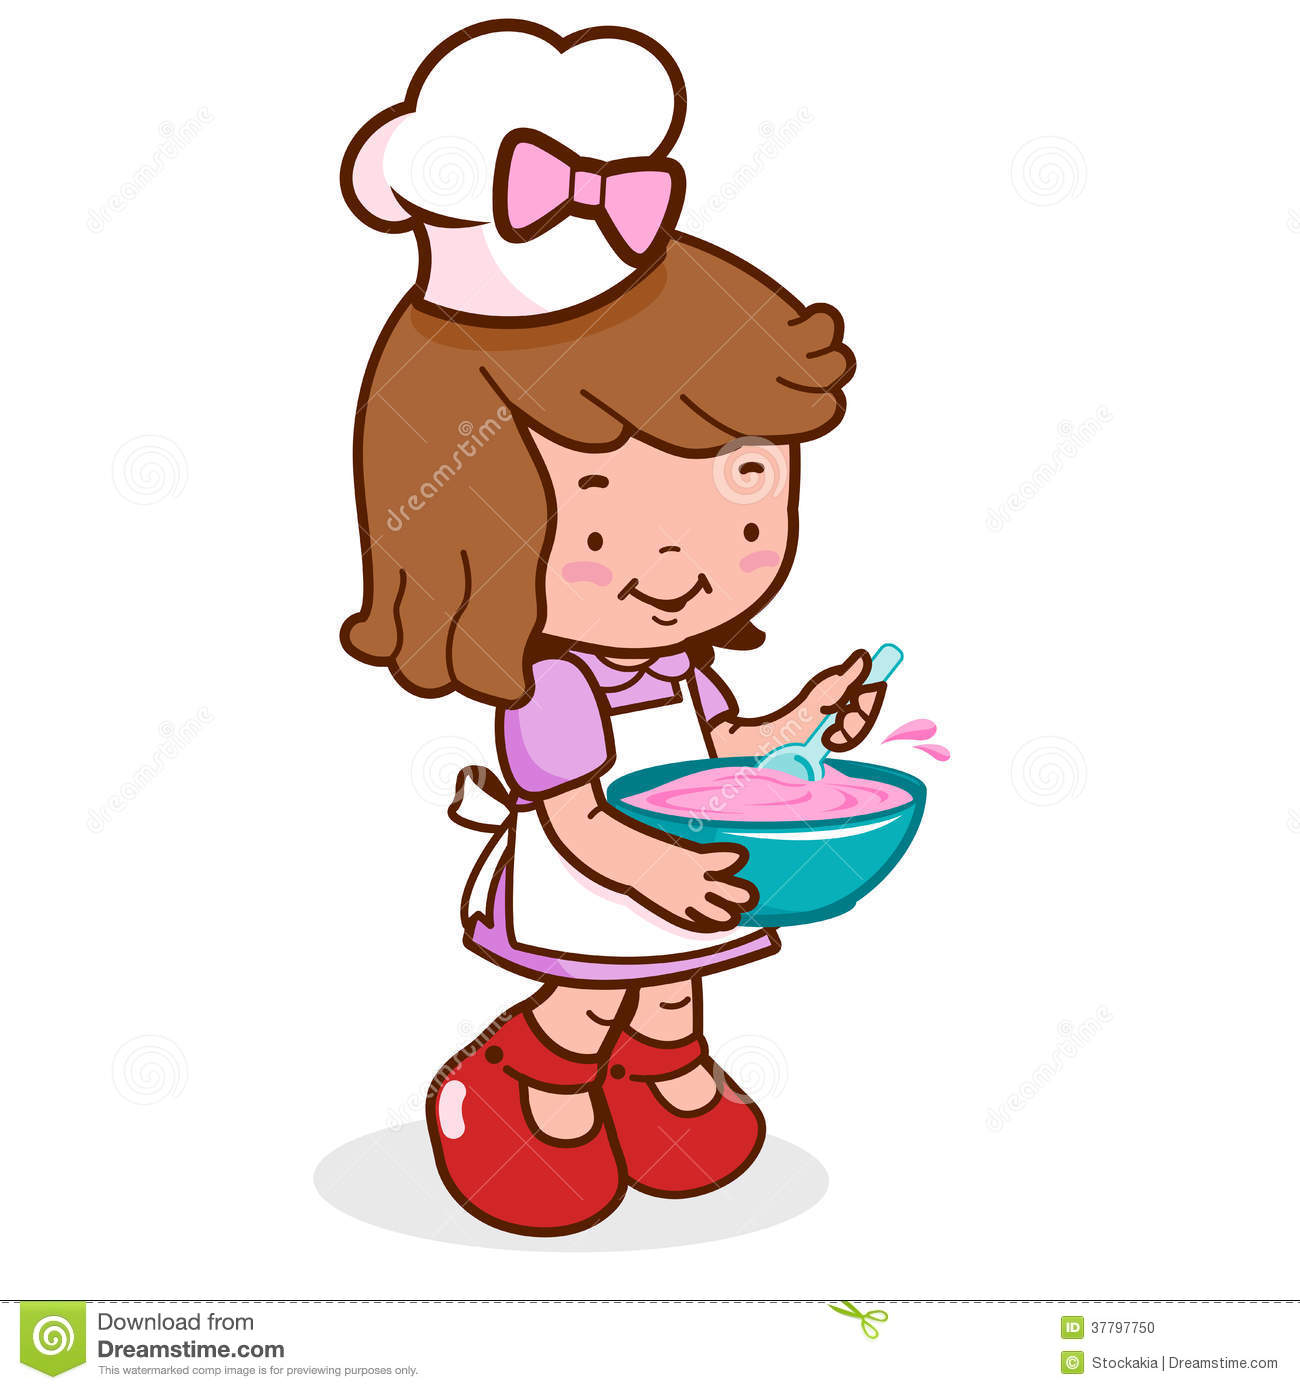 Cooking Stock Illustrations 220,902 Cooking clip art